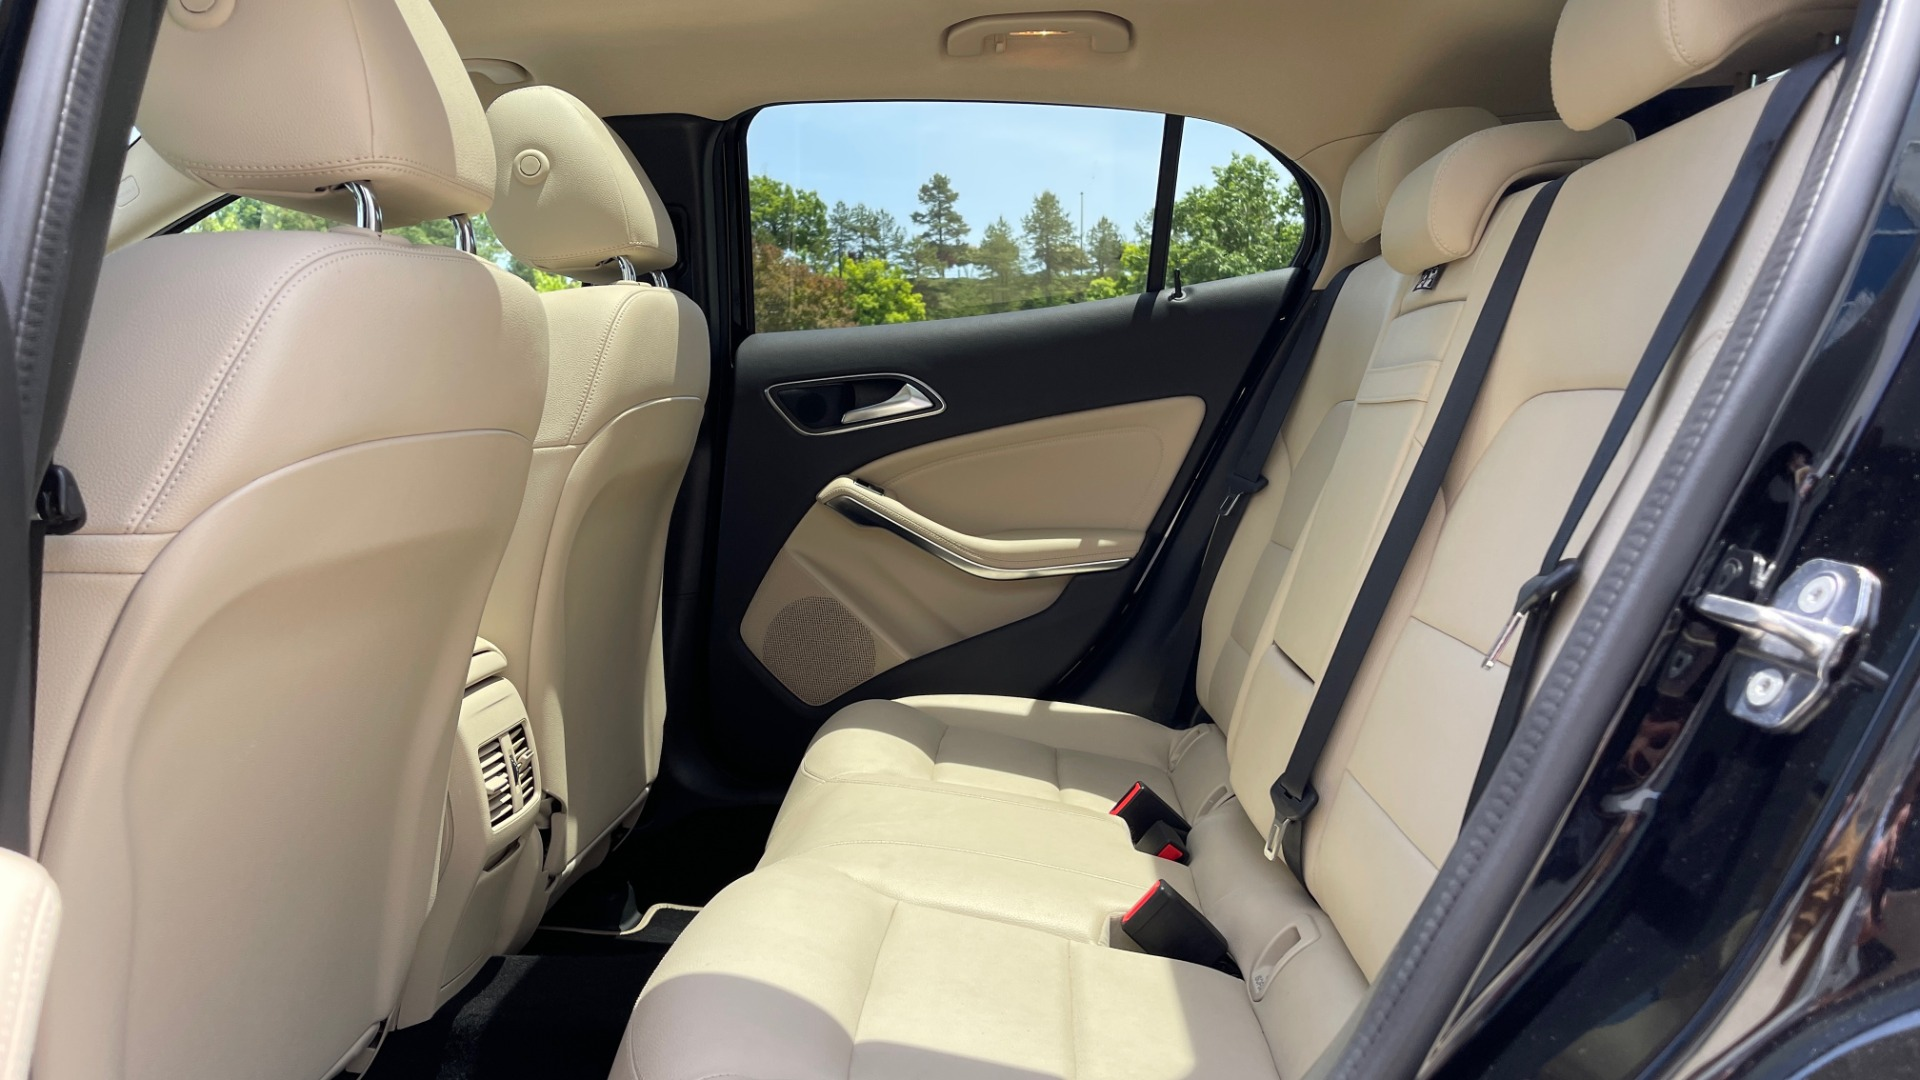 Used 2018 Mercedes-Benz GLA 250 4MATIC SUV / PANO-ROOF / HTD STS / BLIND SPOT ASST / APPLE for sale $31,995 at Formula Imports in Charlotte NC 28227 65